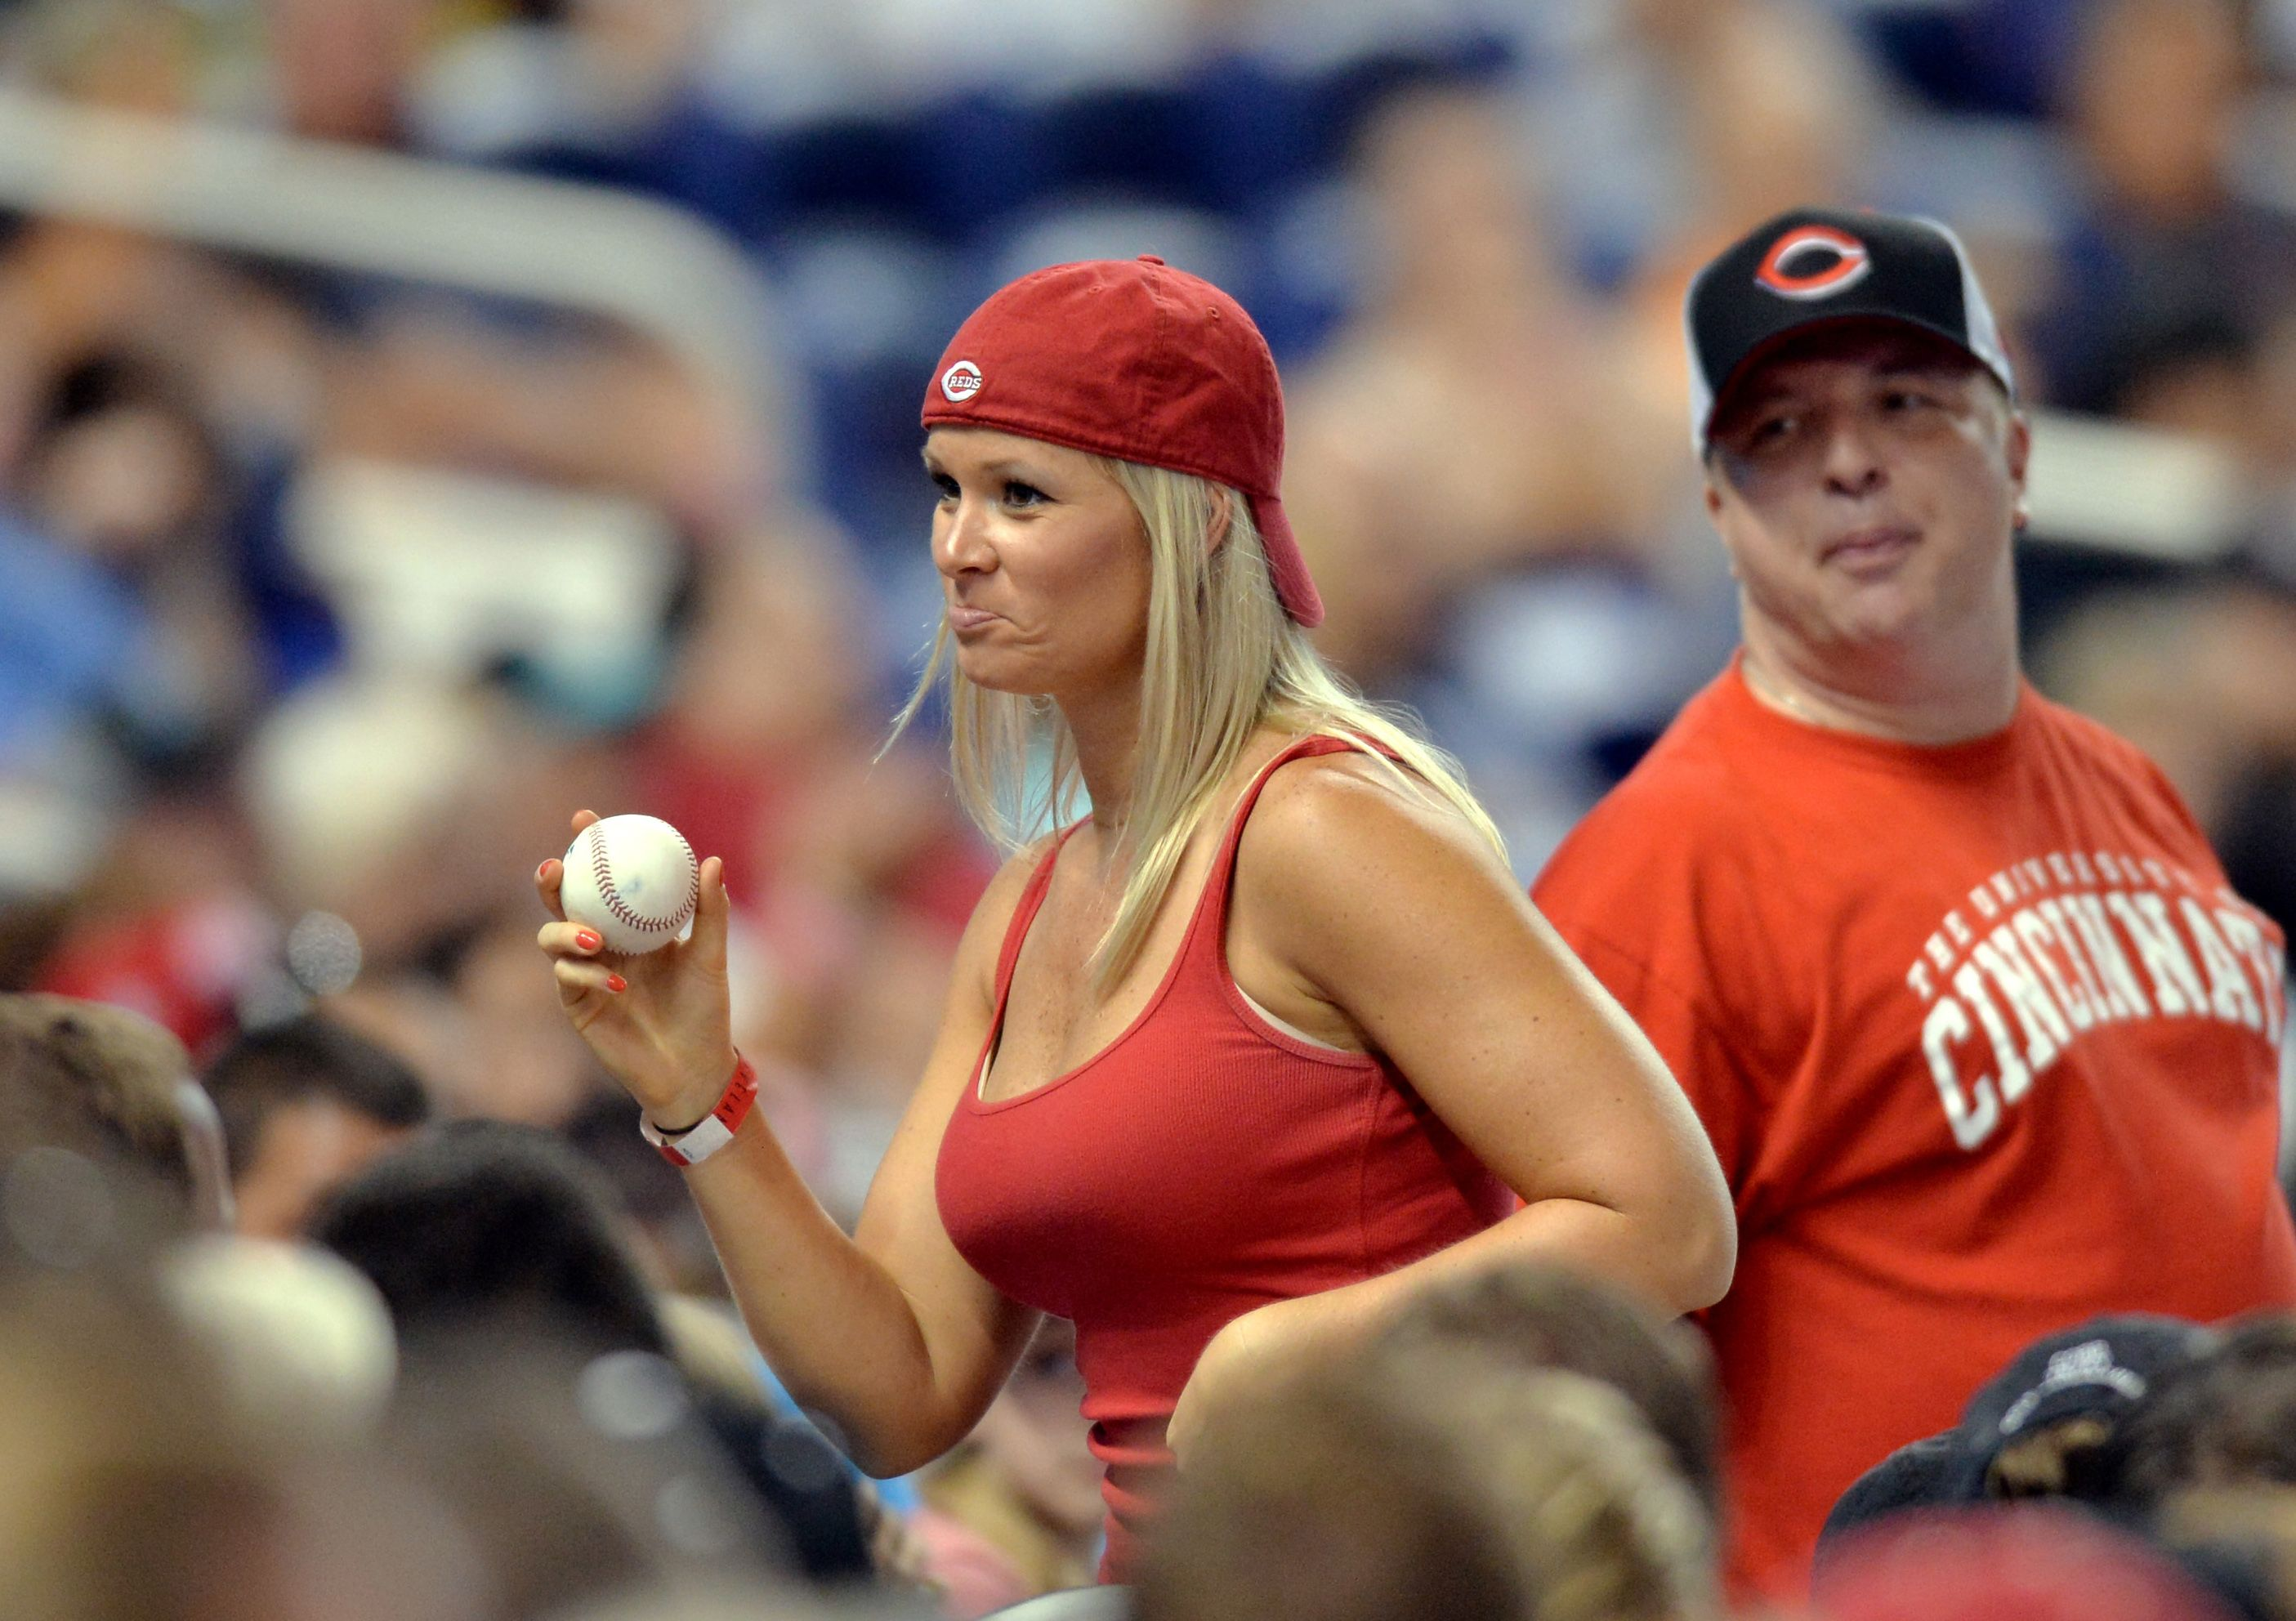 Top 10 Most Disappointing MLB Teams of 2014